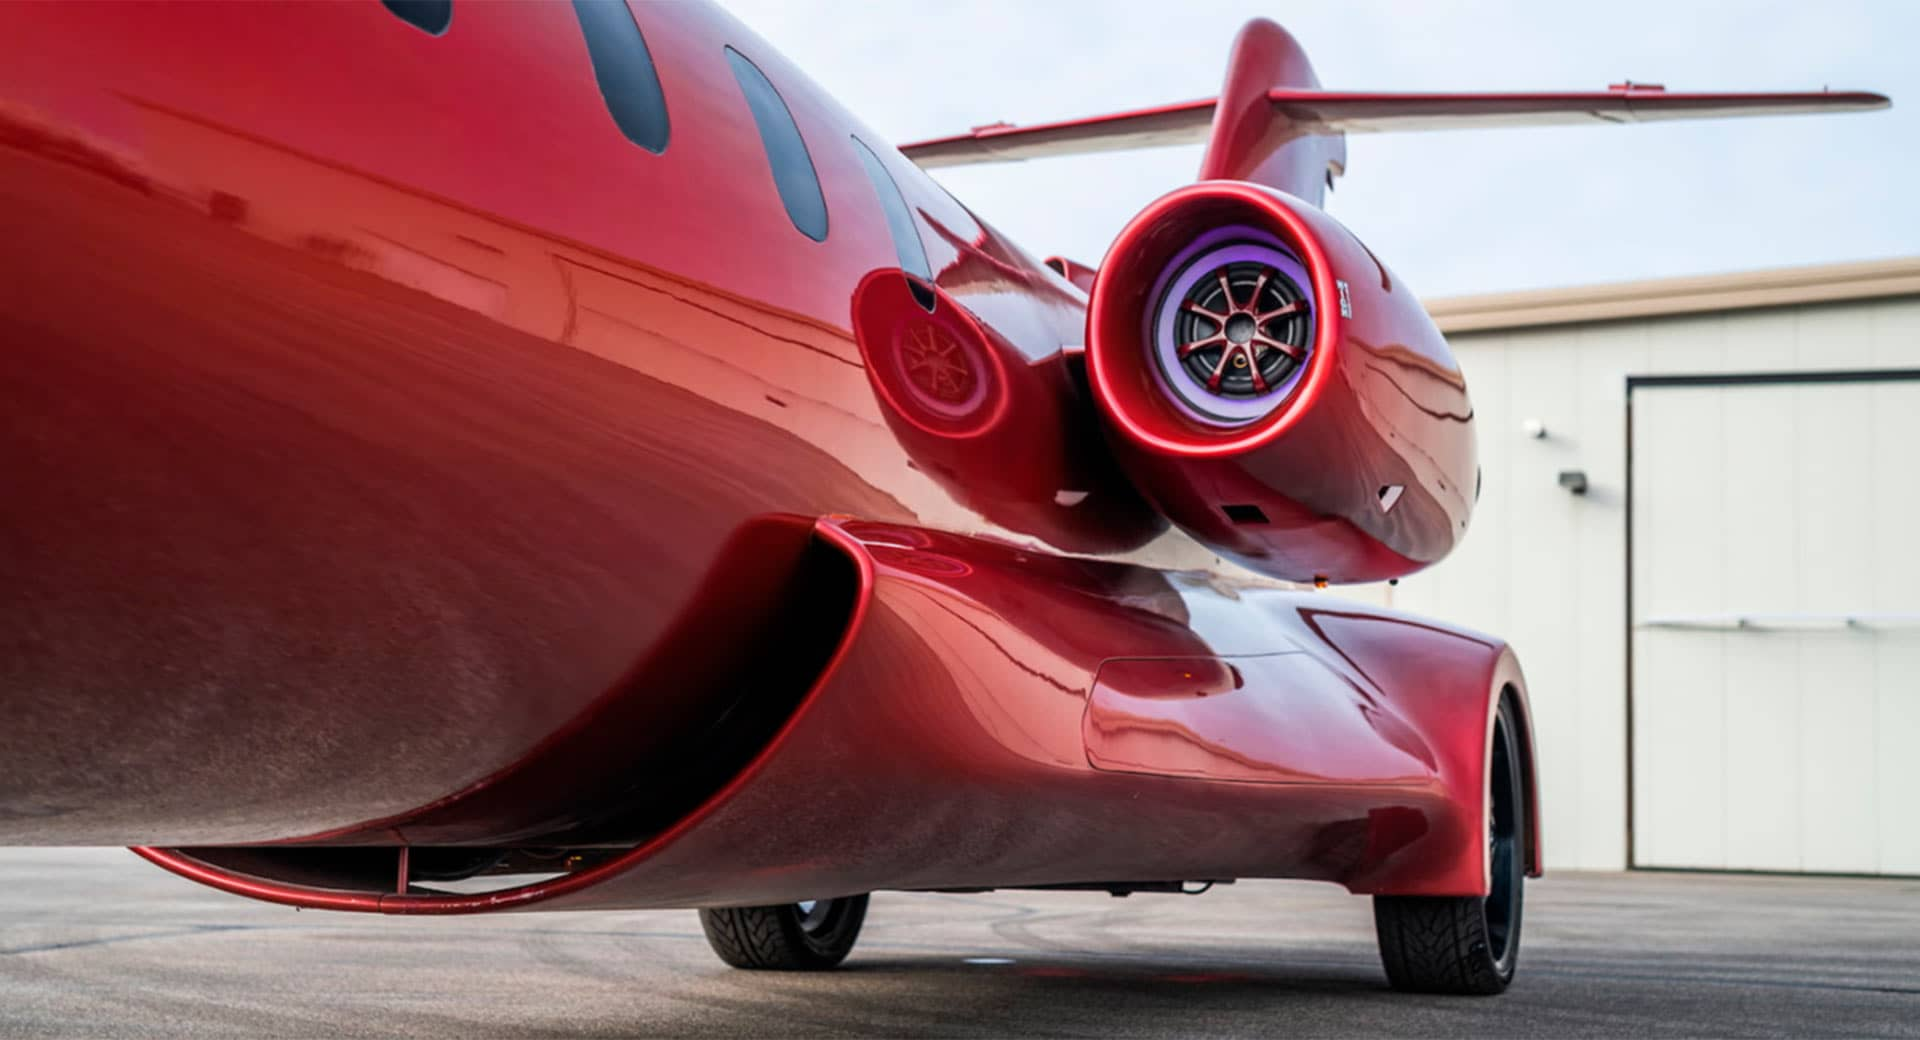 Lear-Jet-Limo-6